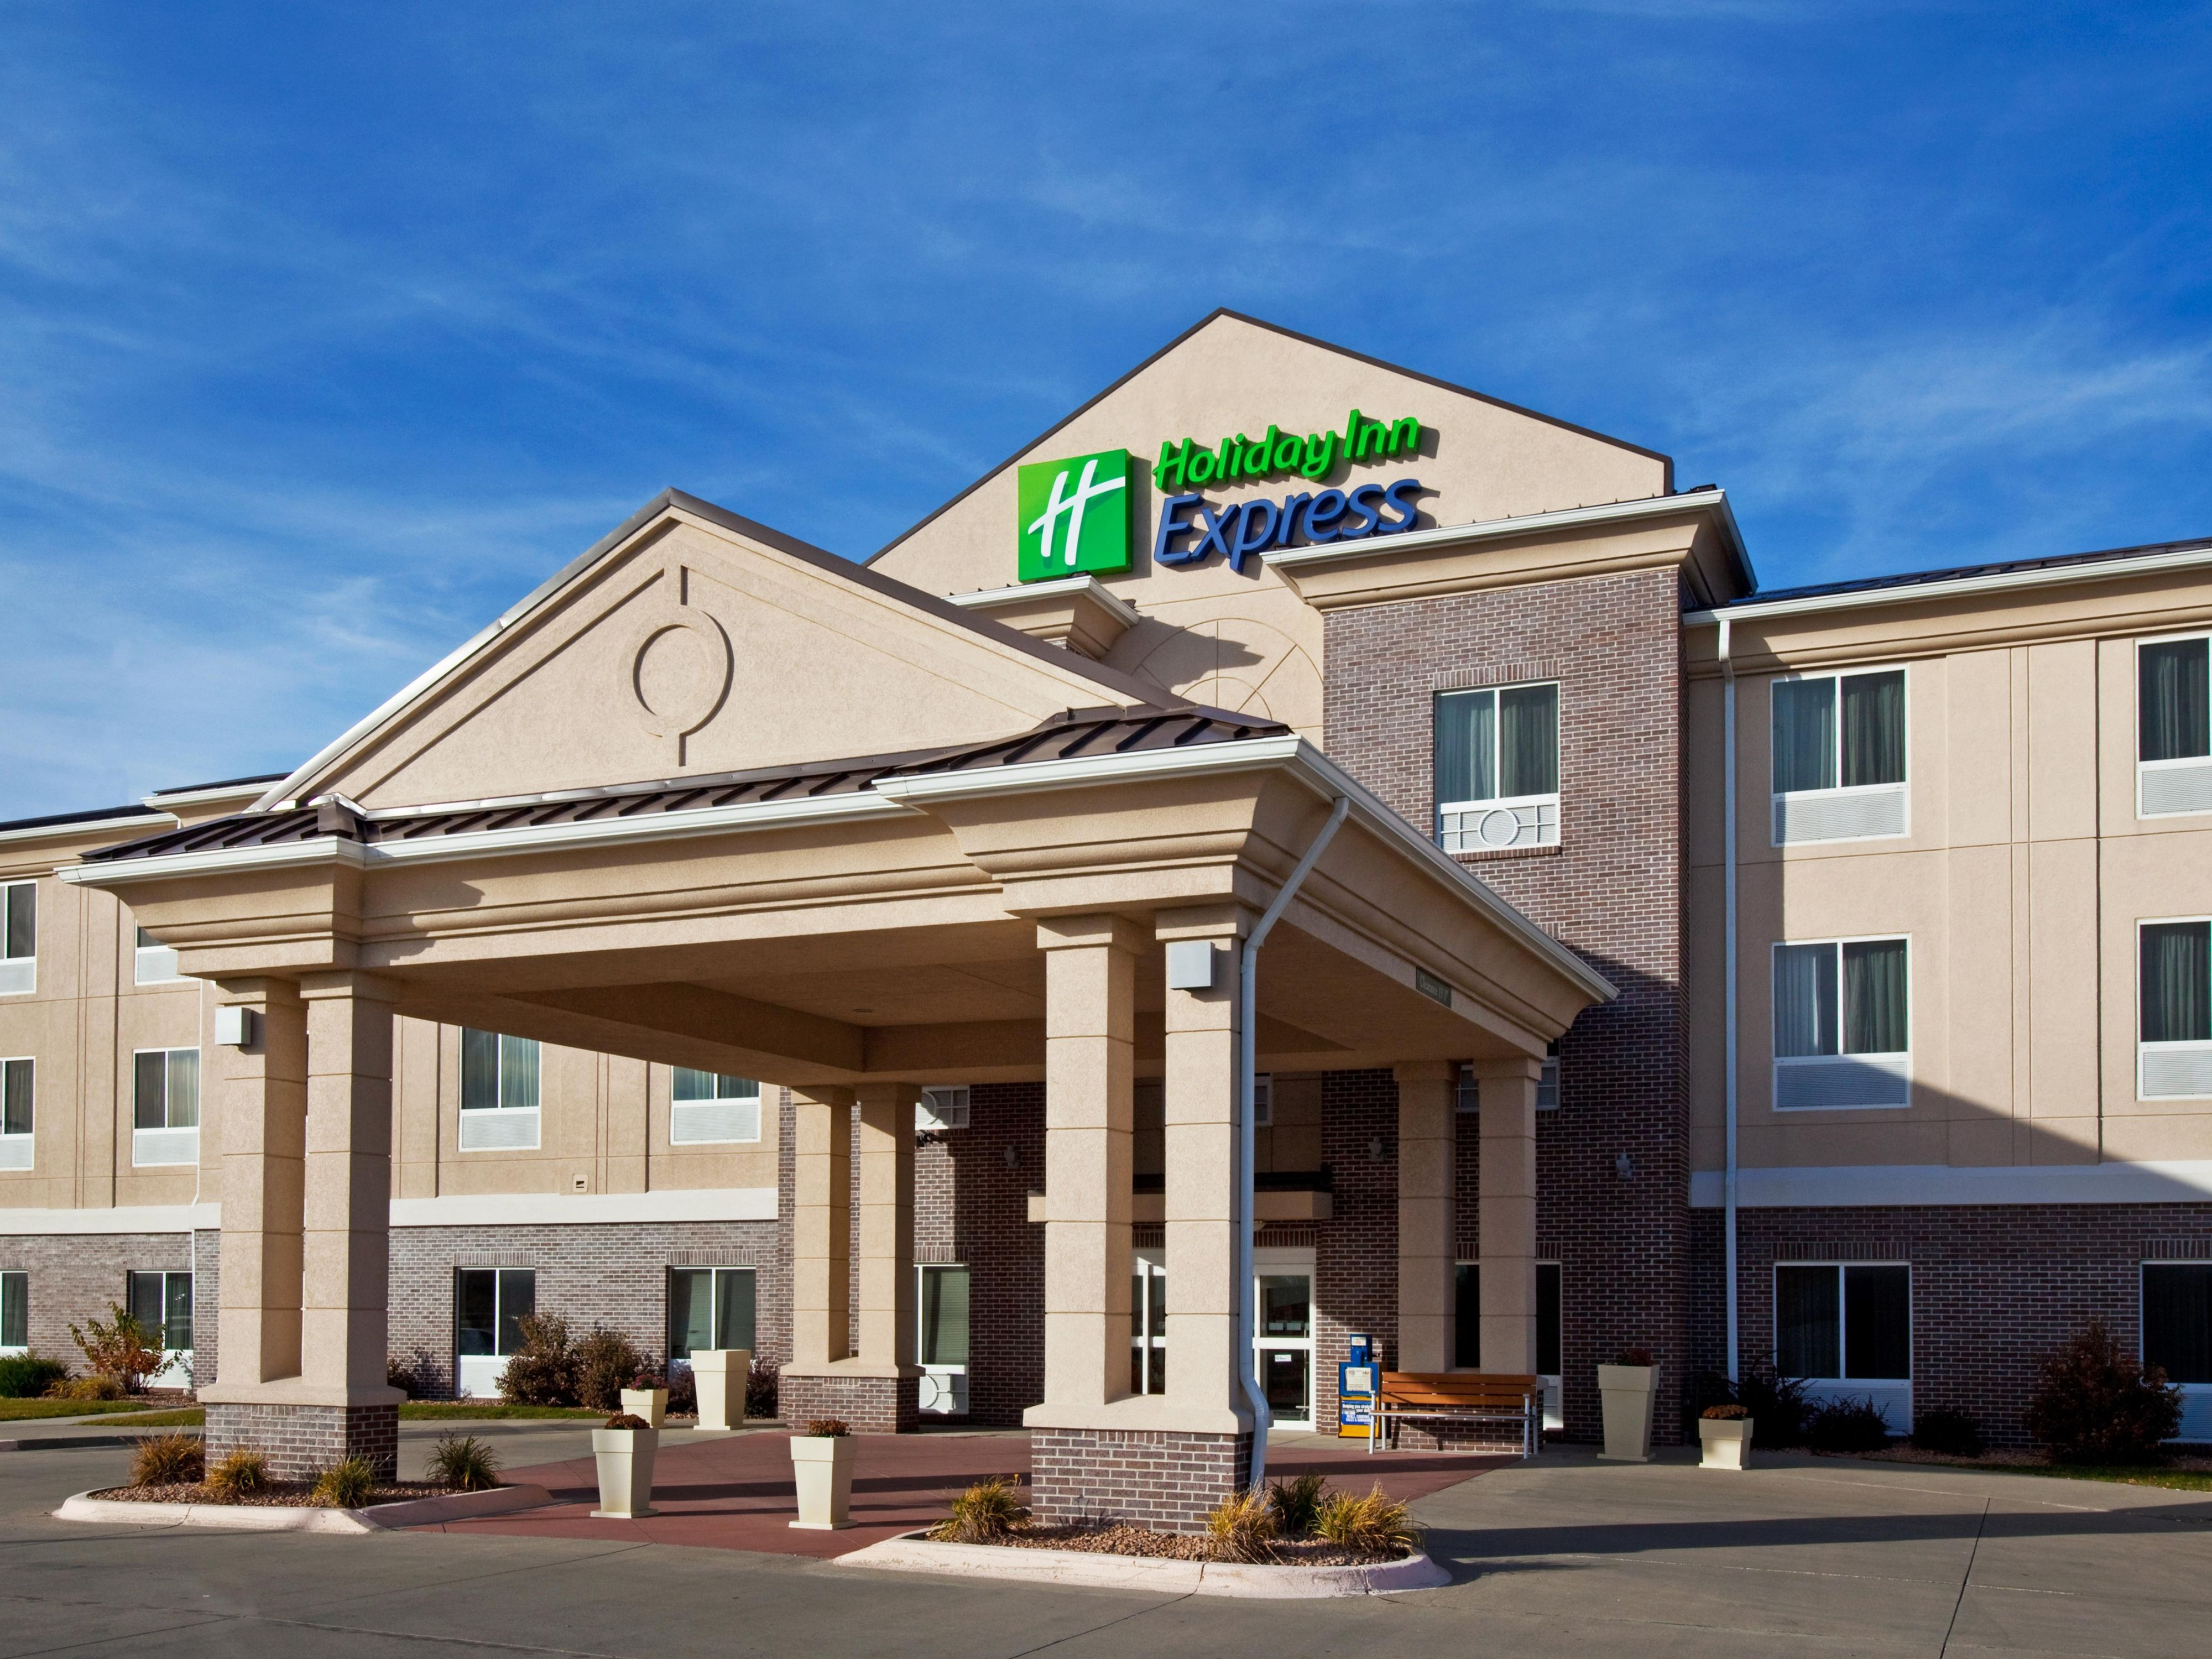 Holiday Inn Express Suites Ankeny Des Moines Hotel By Ihg